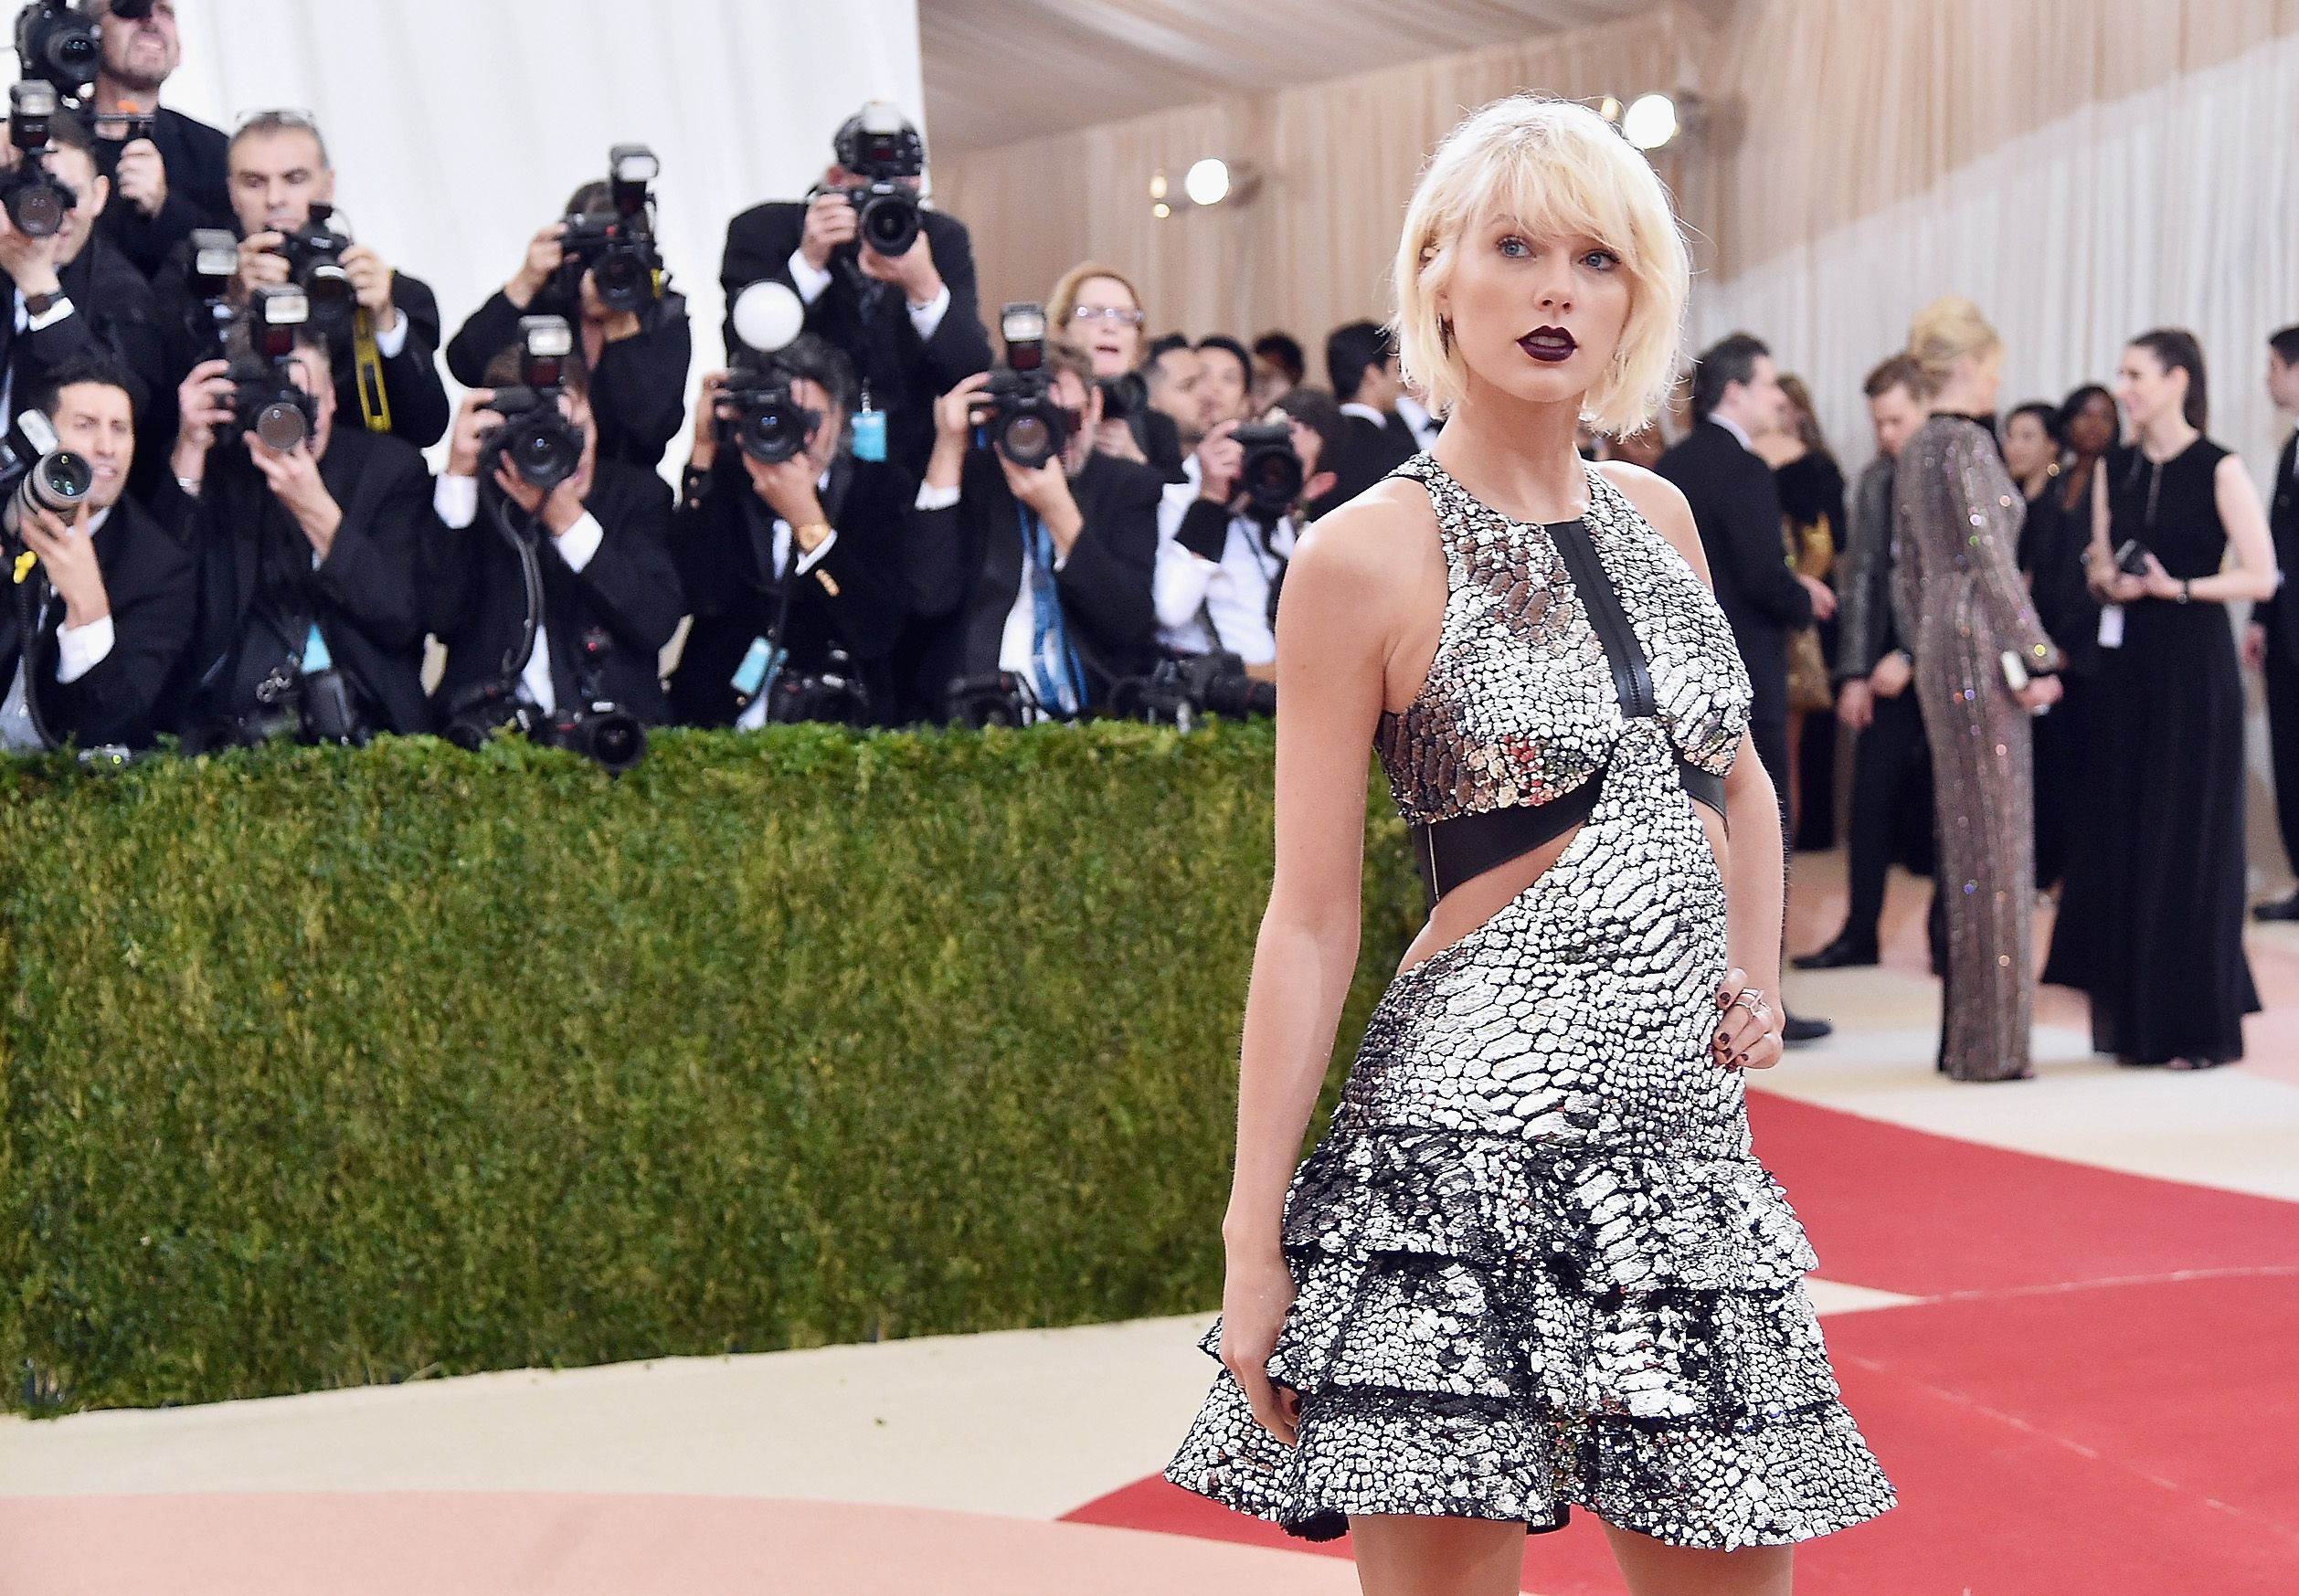 The Sweet Reason Taylor Swift Skipped The Met Ball